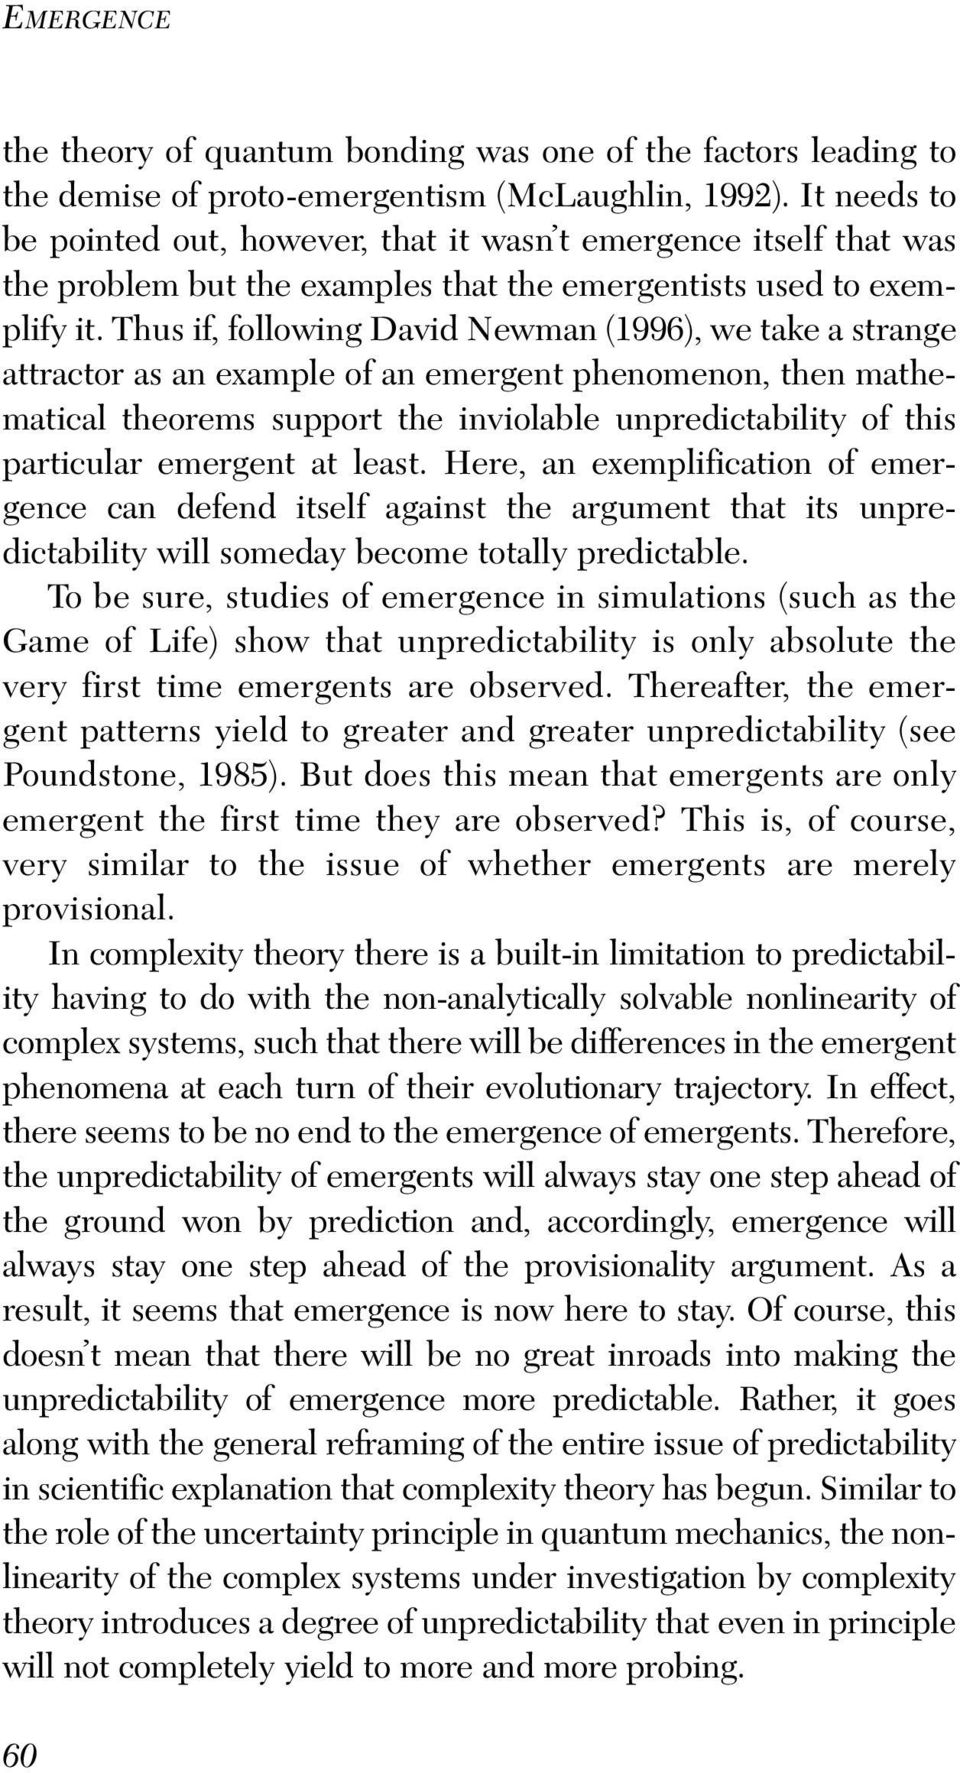 Thus if, following David Newman (1996), we take a strange attractor as an example of an emergent phenomenon, then mathematical theorems support the inviolable unpredictability of this particular